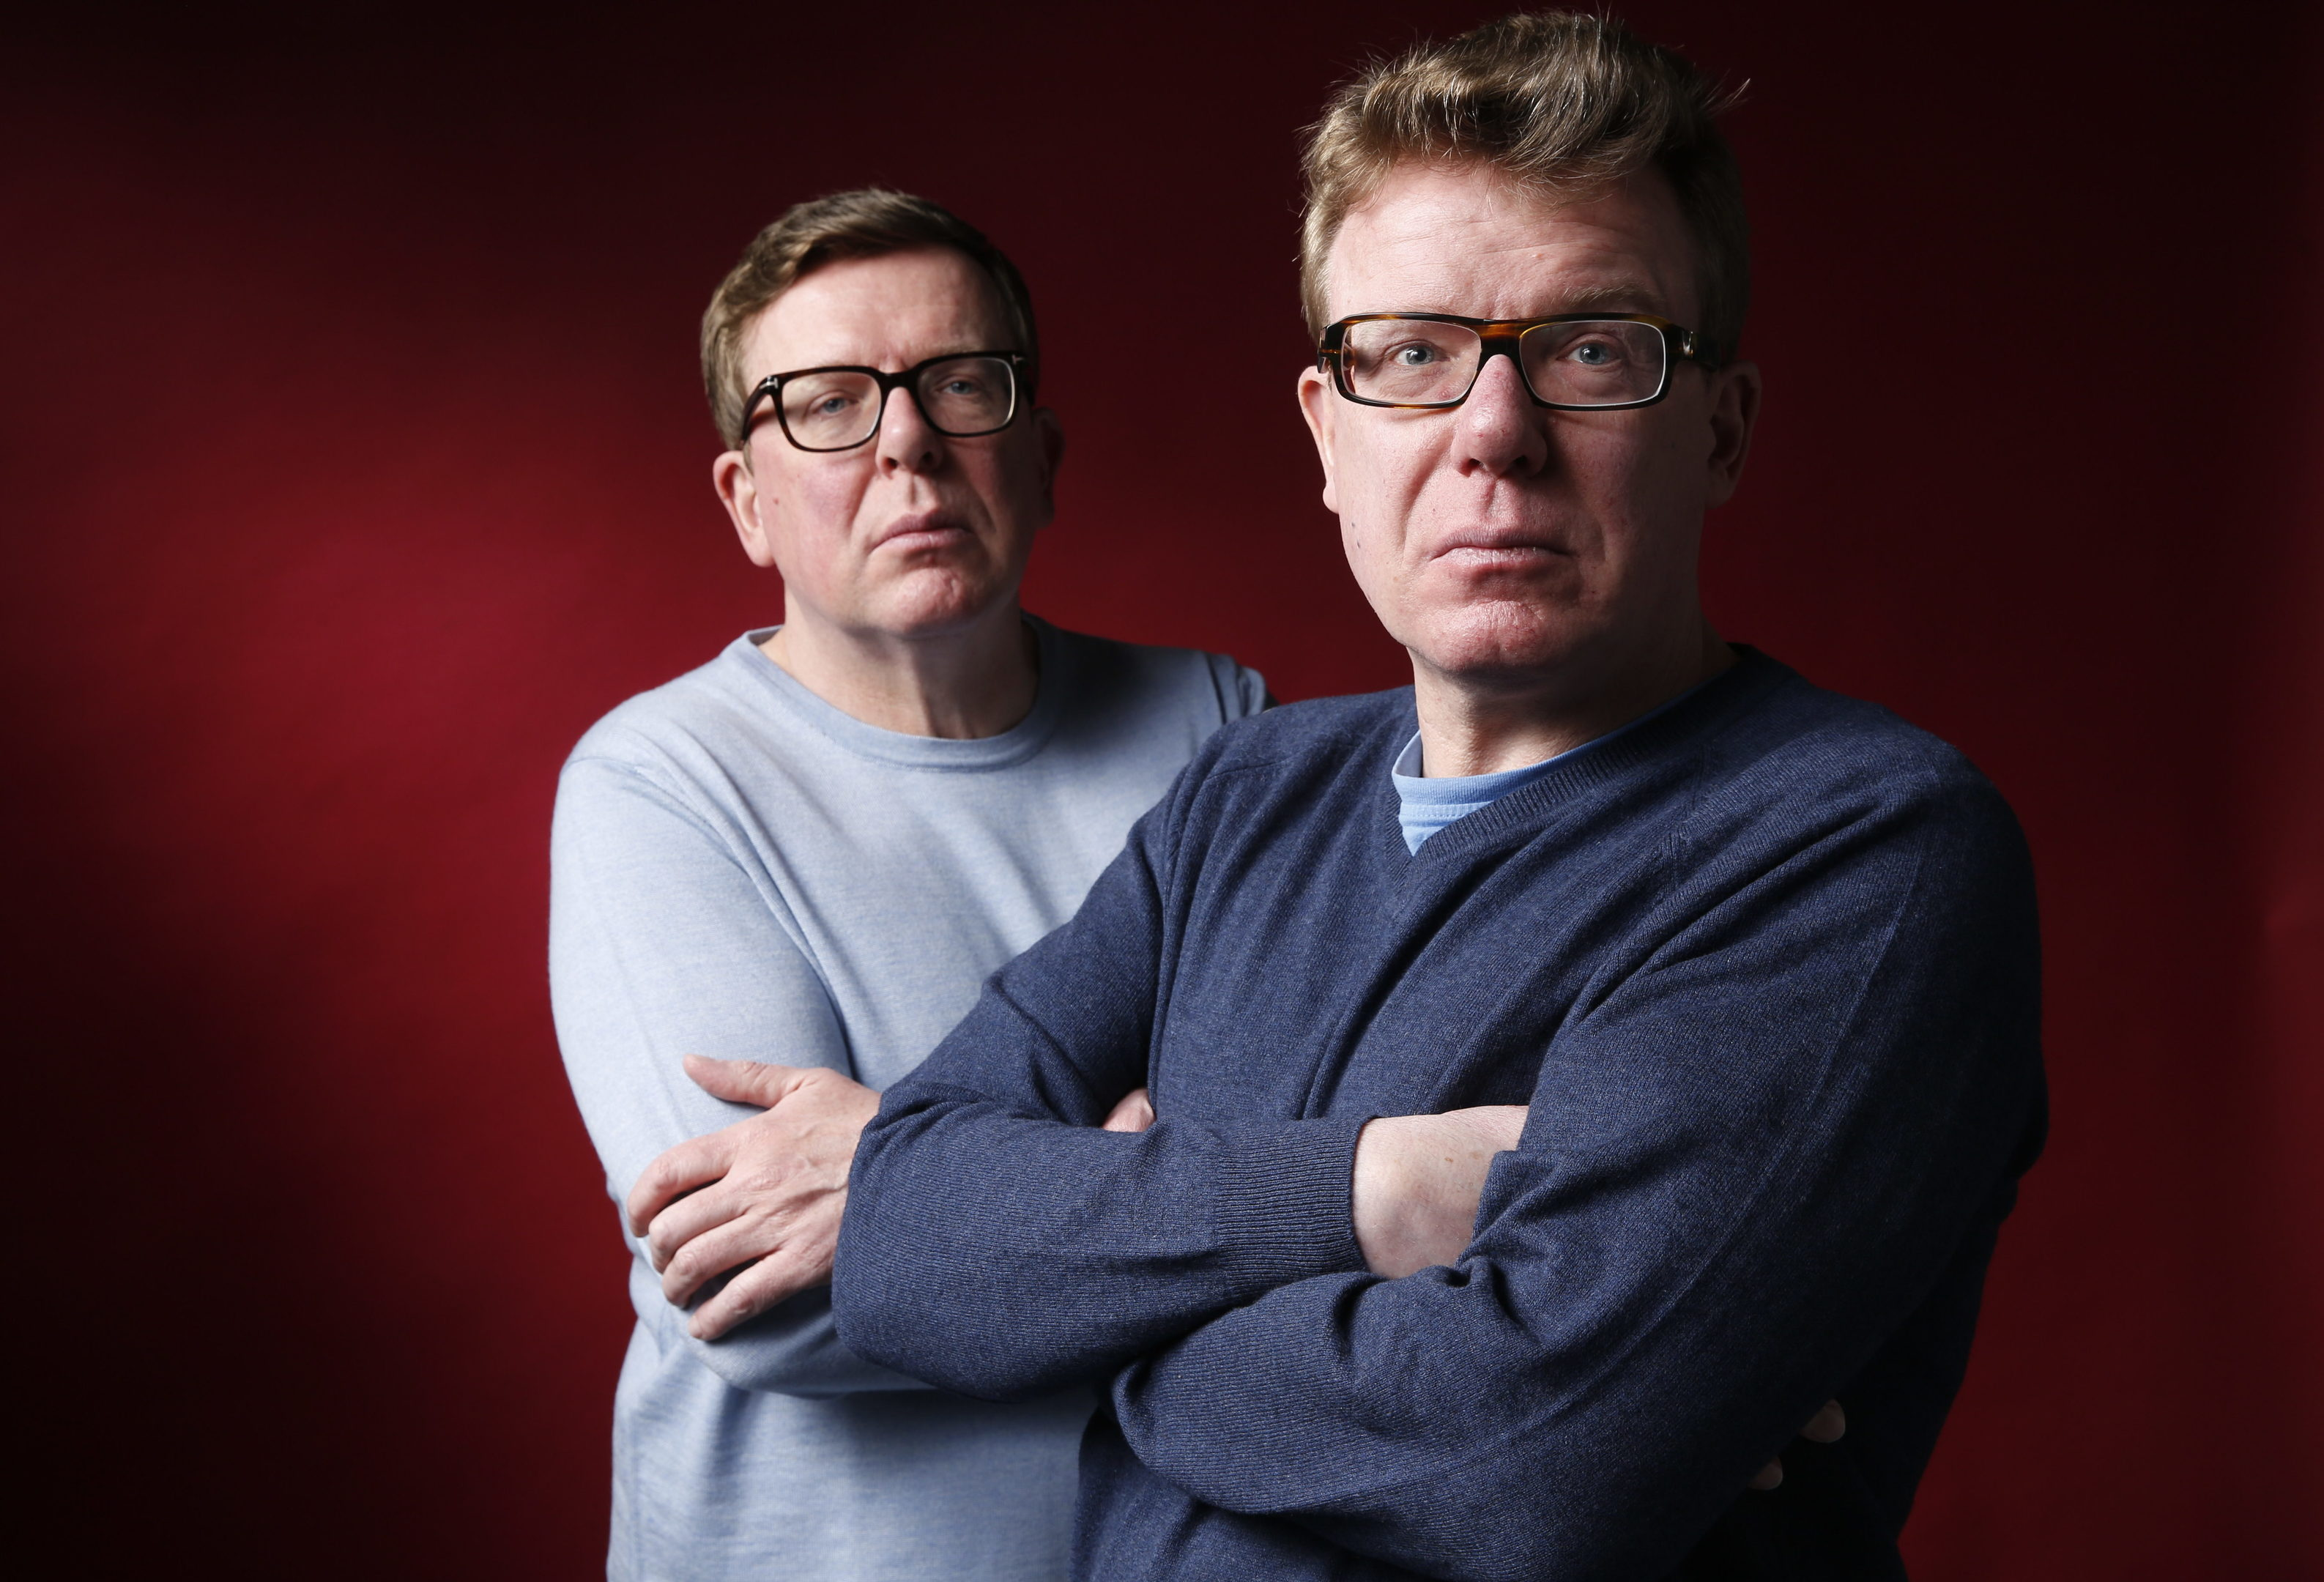 Craig and Charlie Reid, The Proclaimers. Seen here in studio shoot in Leith.